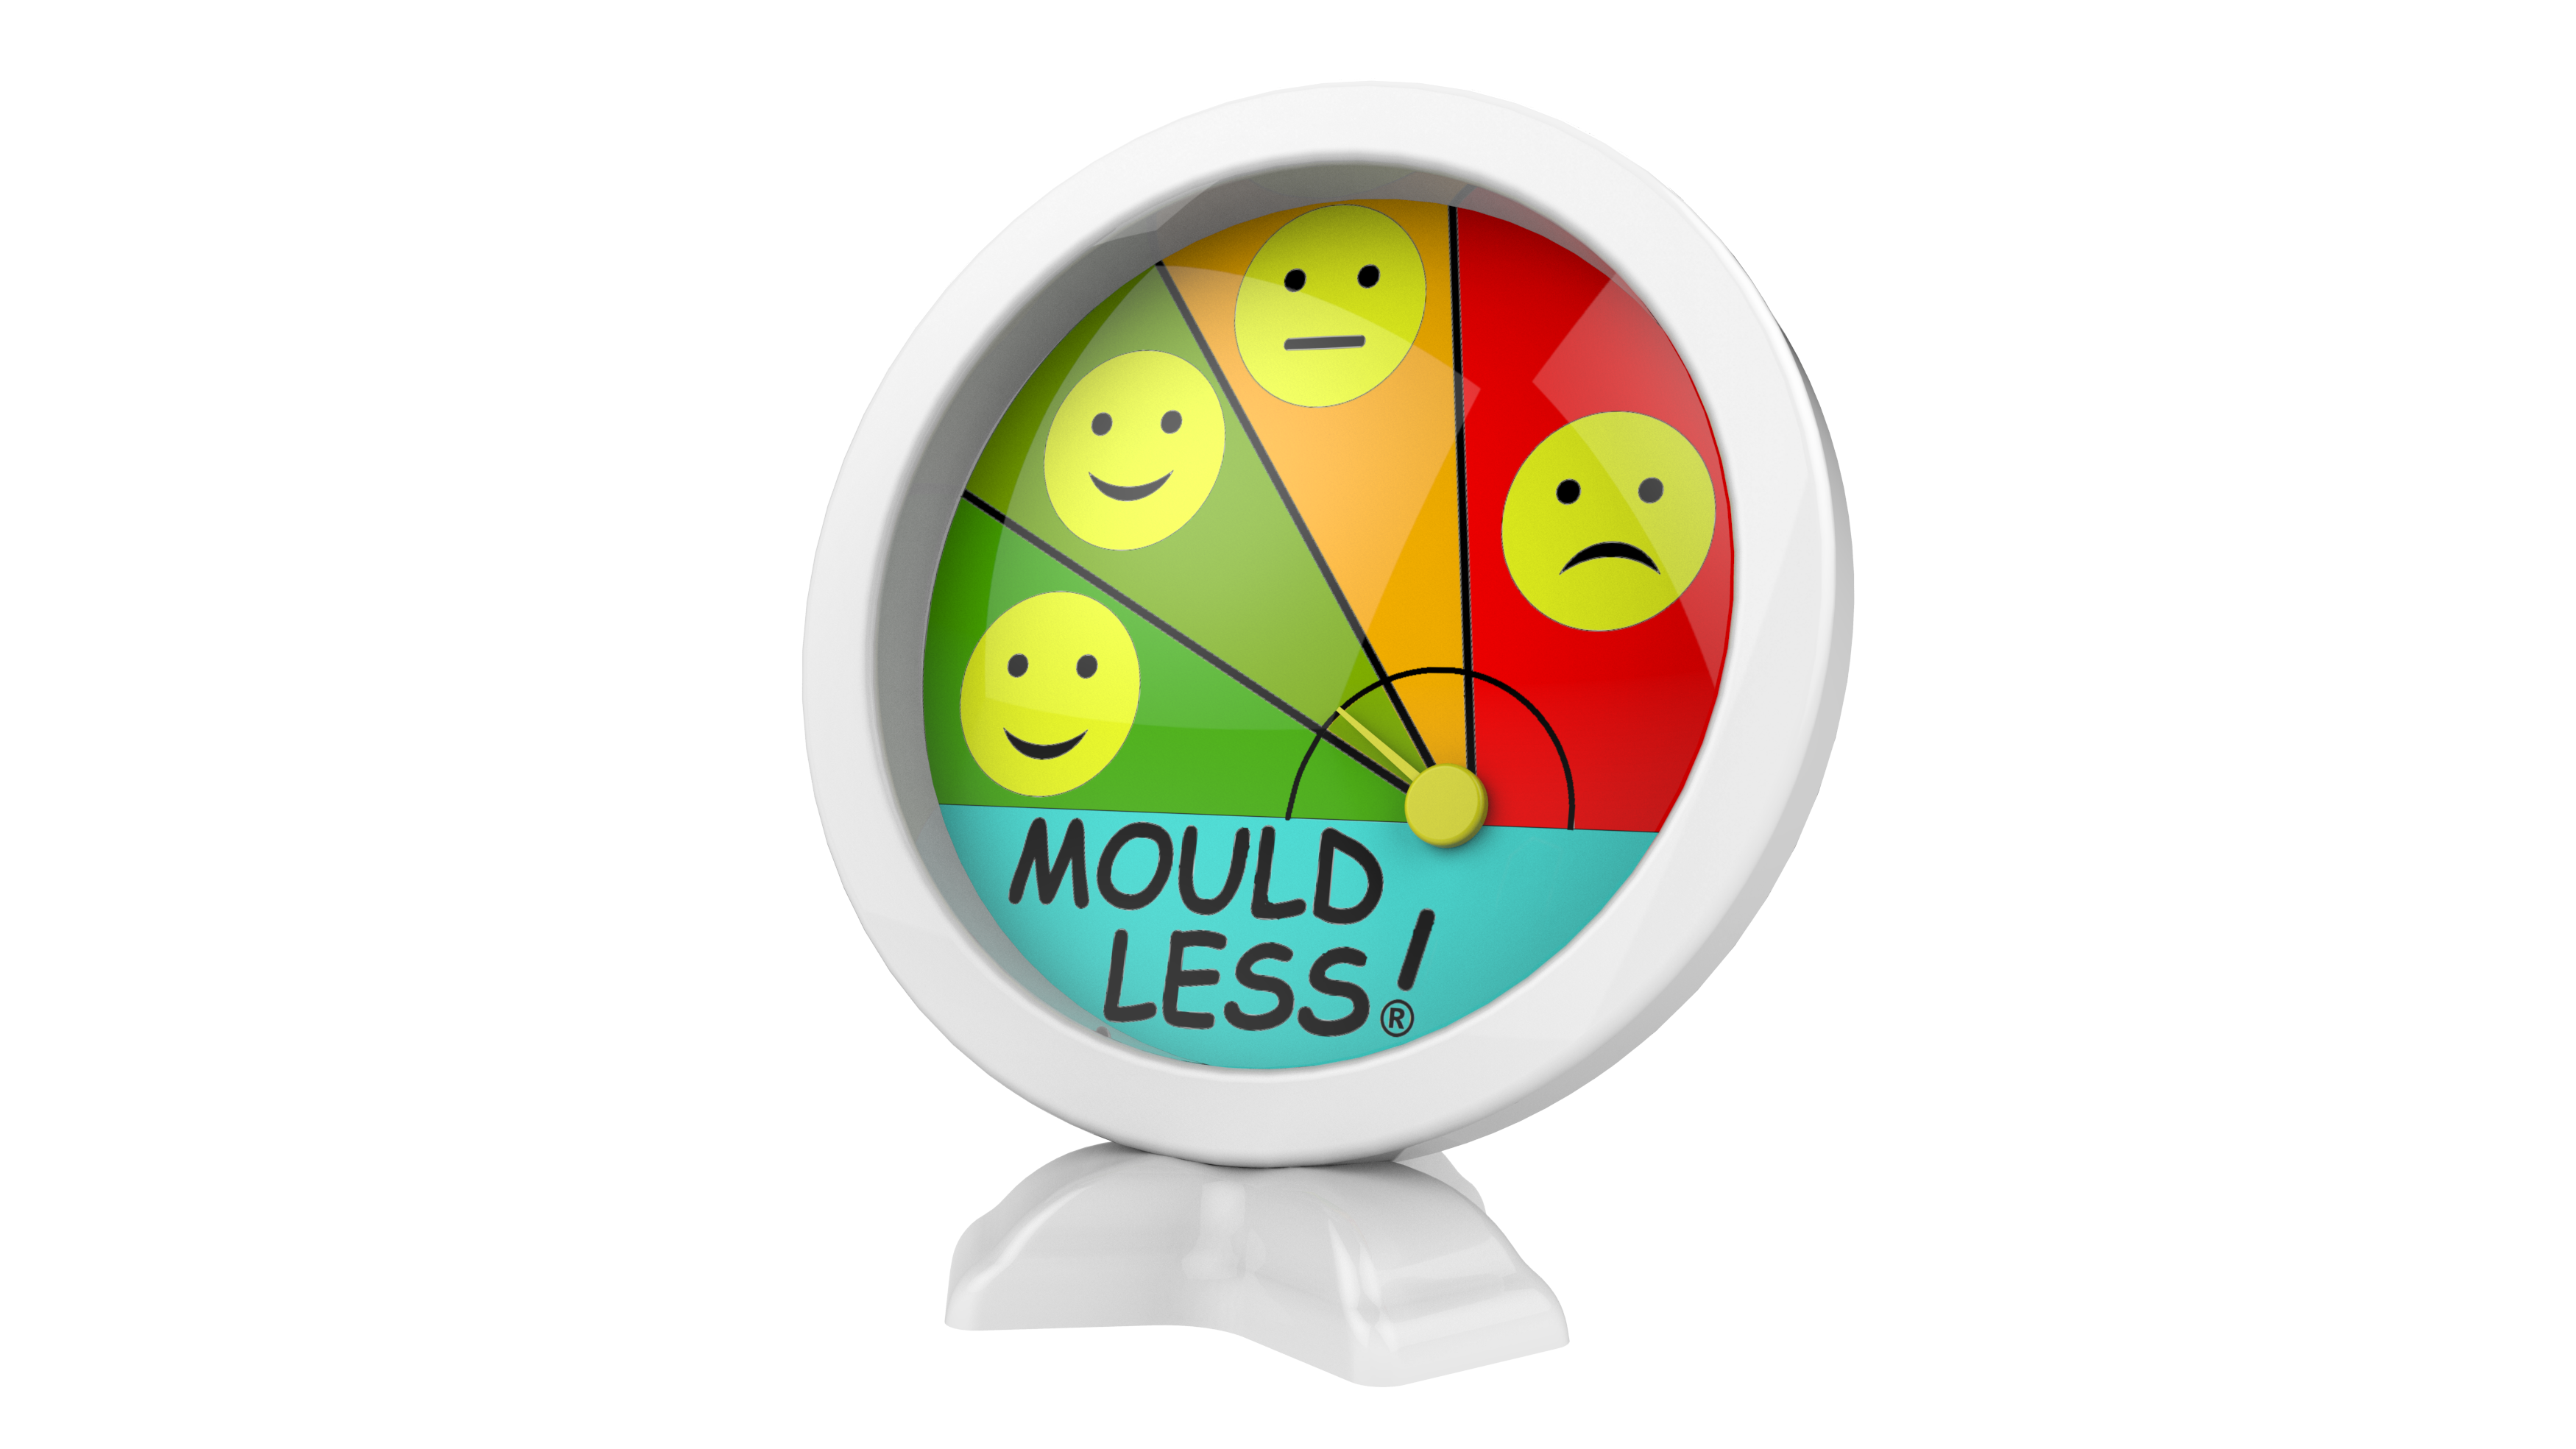 BUY MOULD LESS HERE